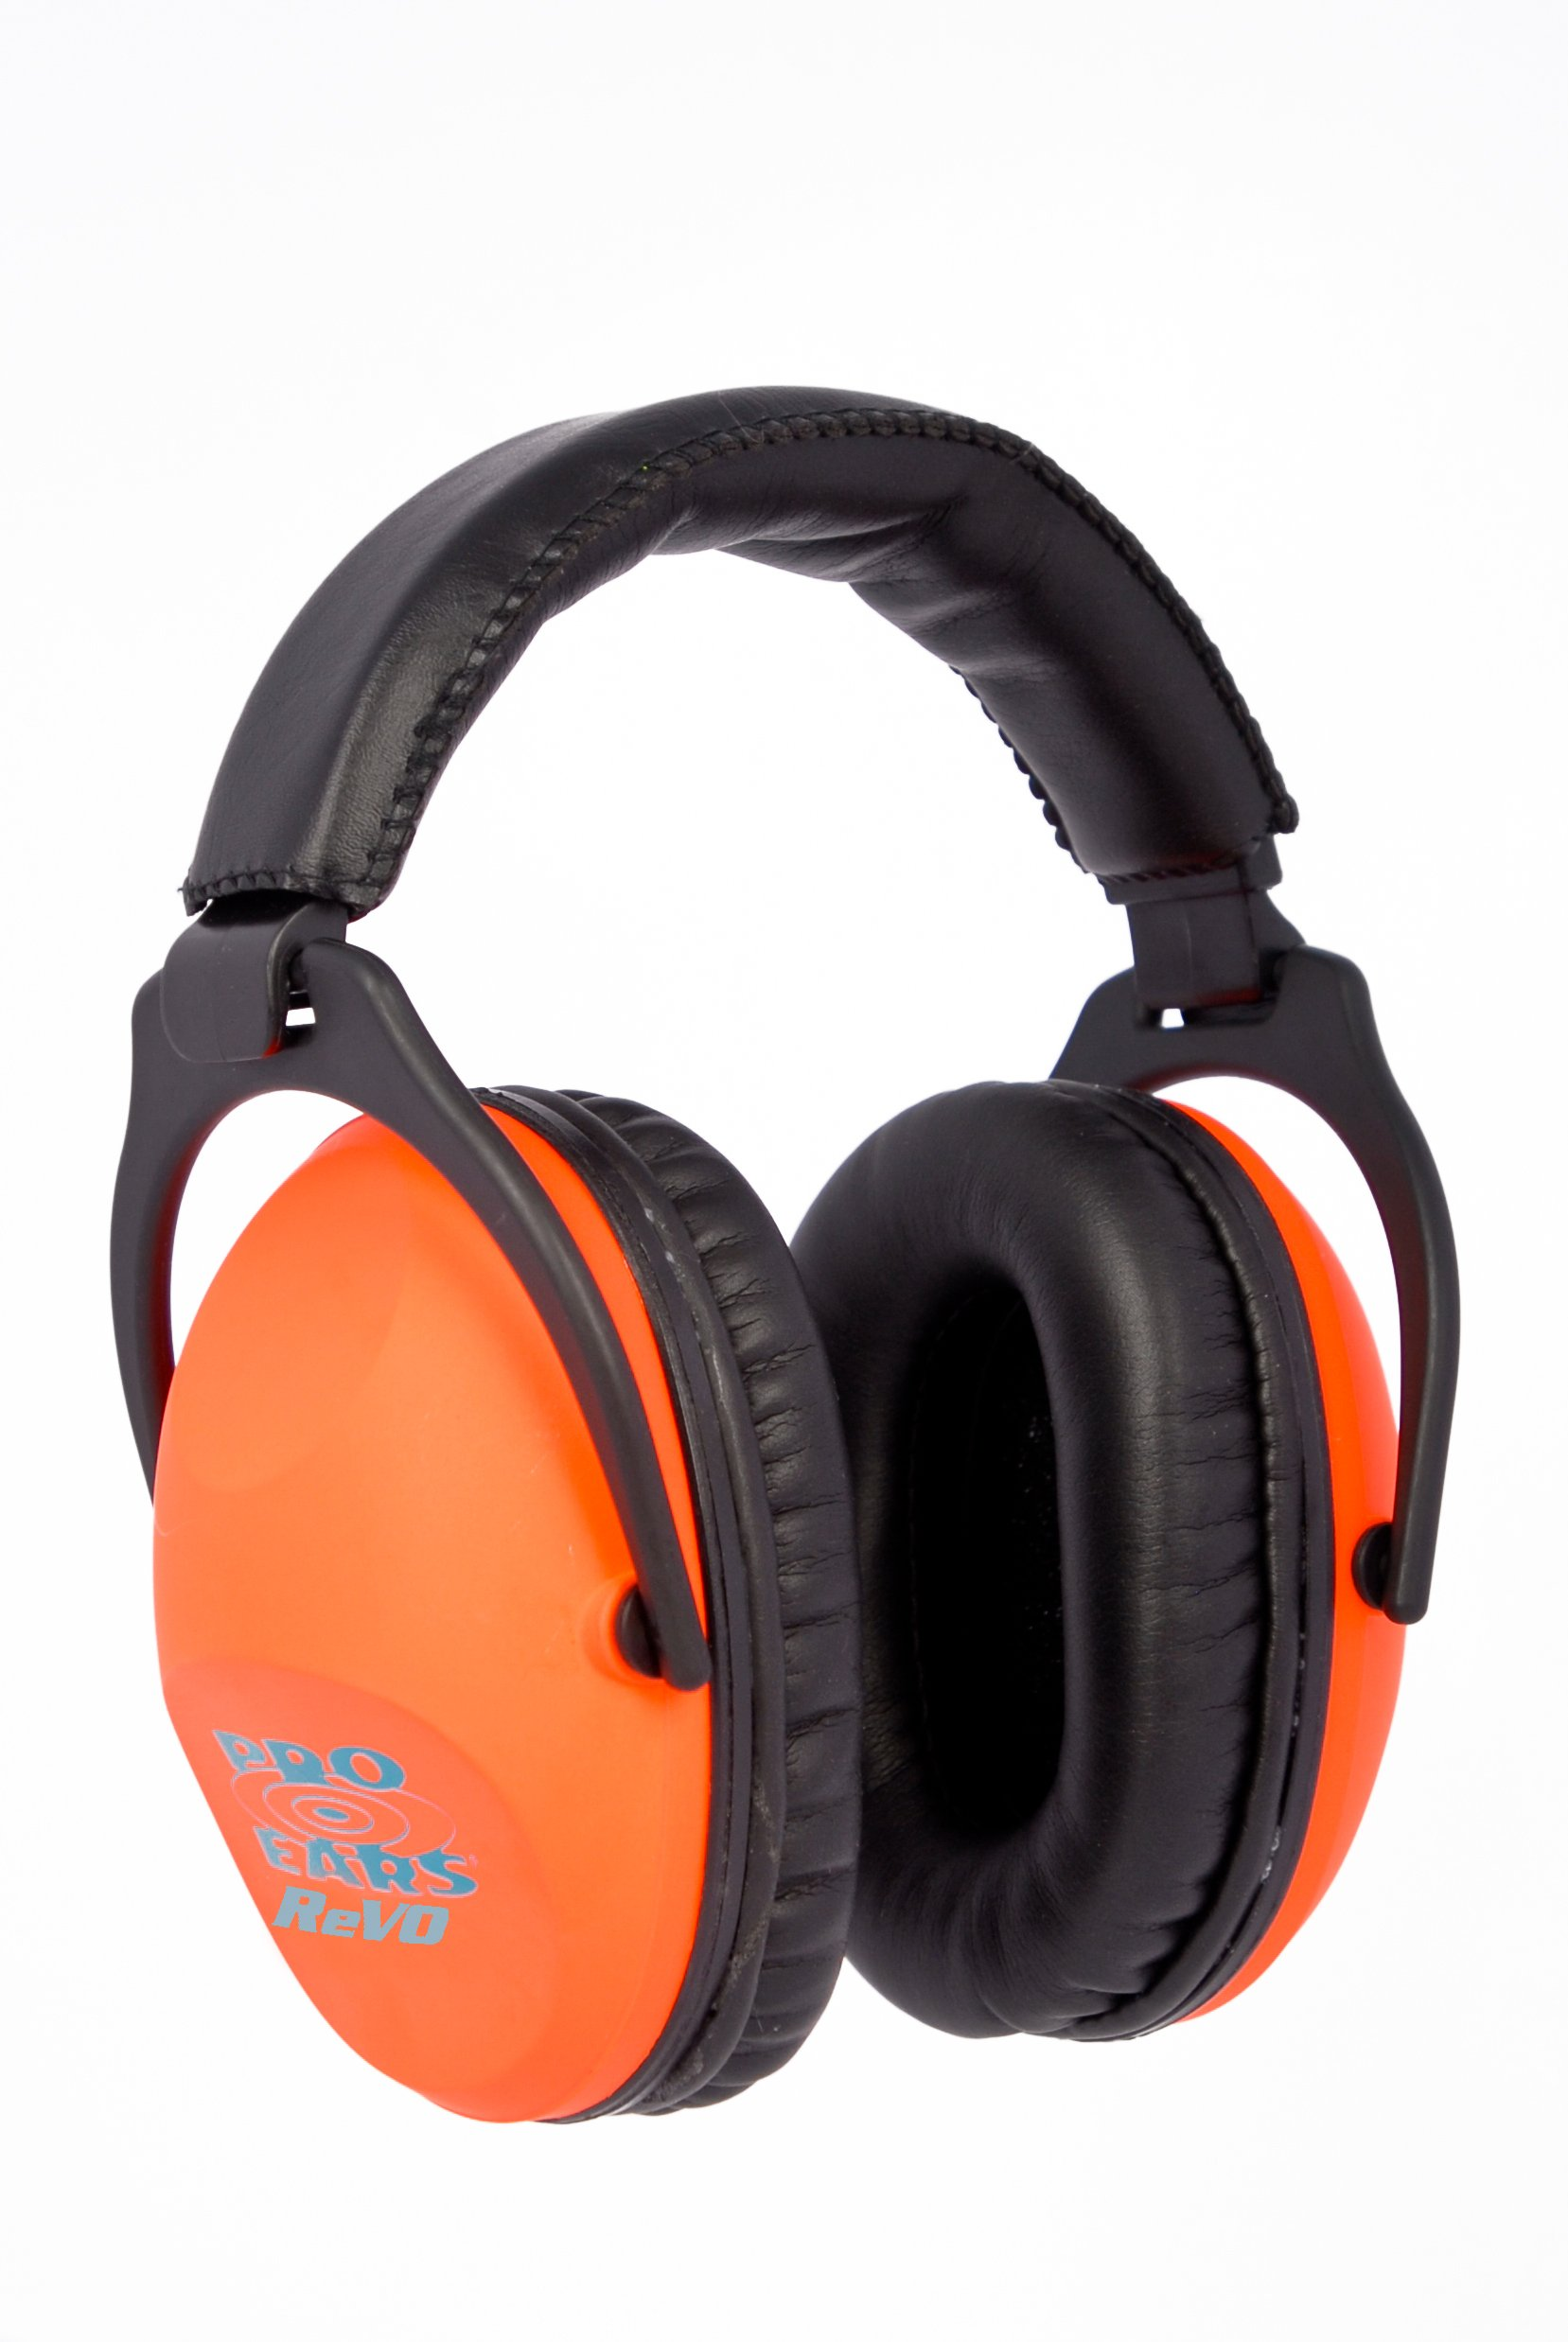 Pro Ears - ReVO - Hearing Protection - NRR 25 - Youth and Women Ear Muffs - Neon Orange by Pro Ears (Image #1)